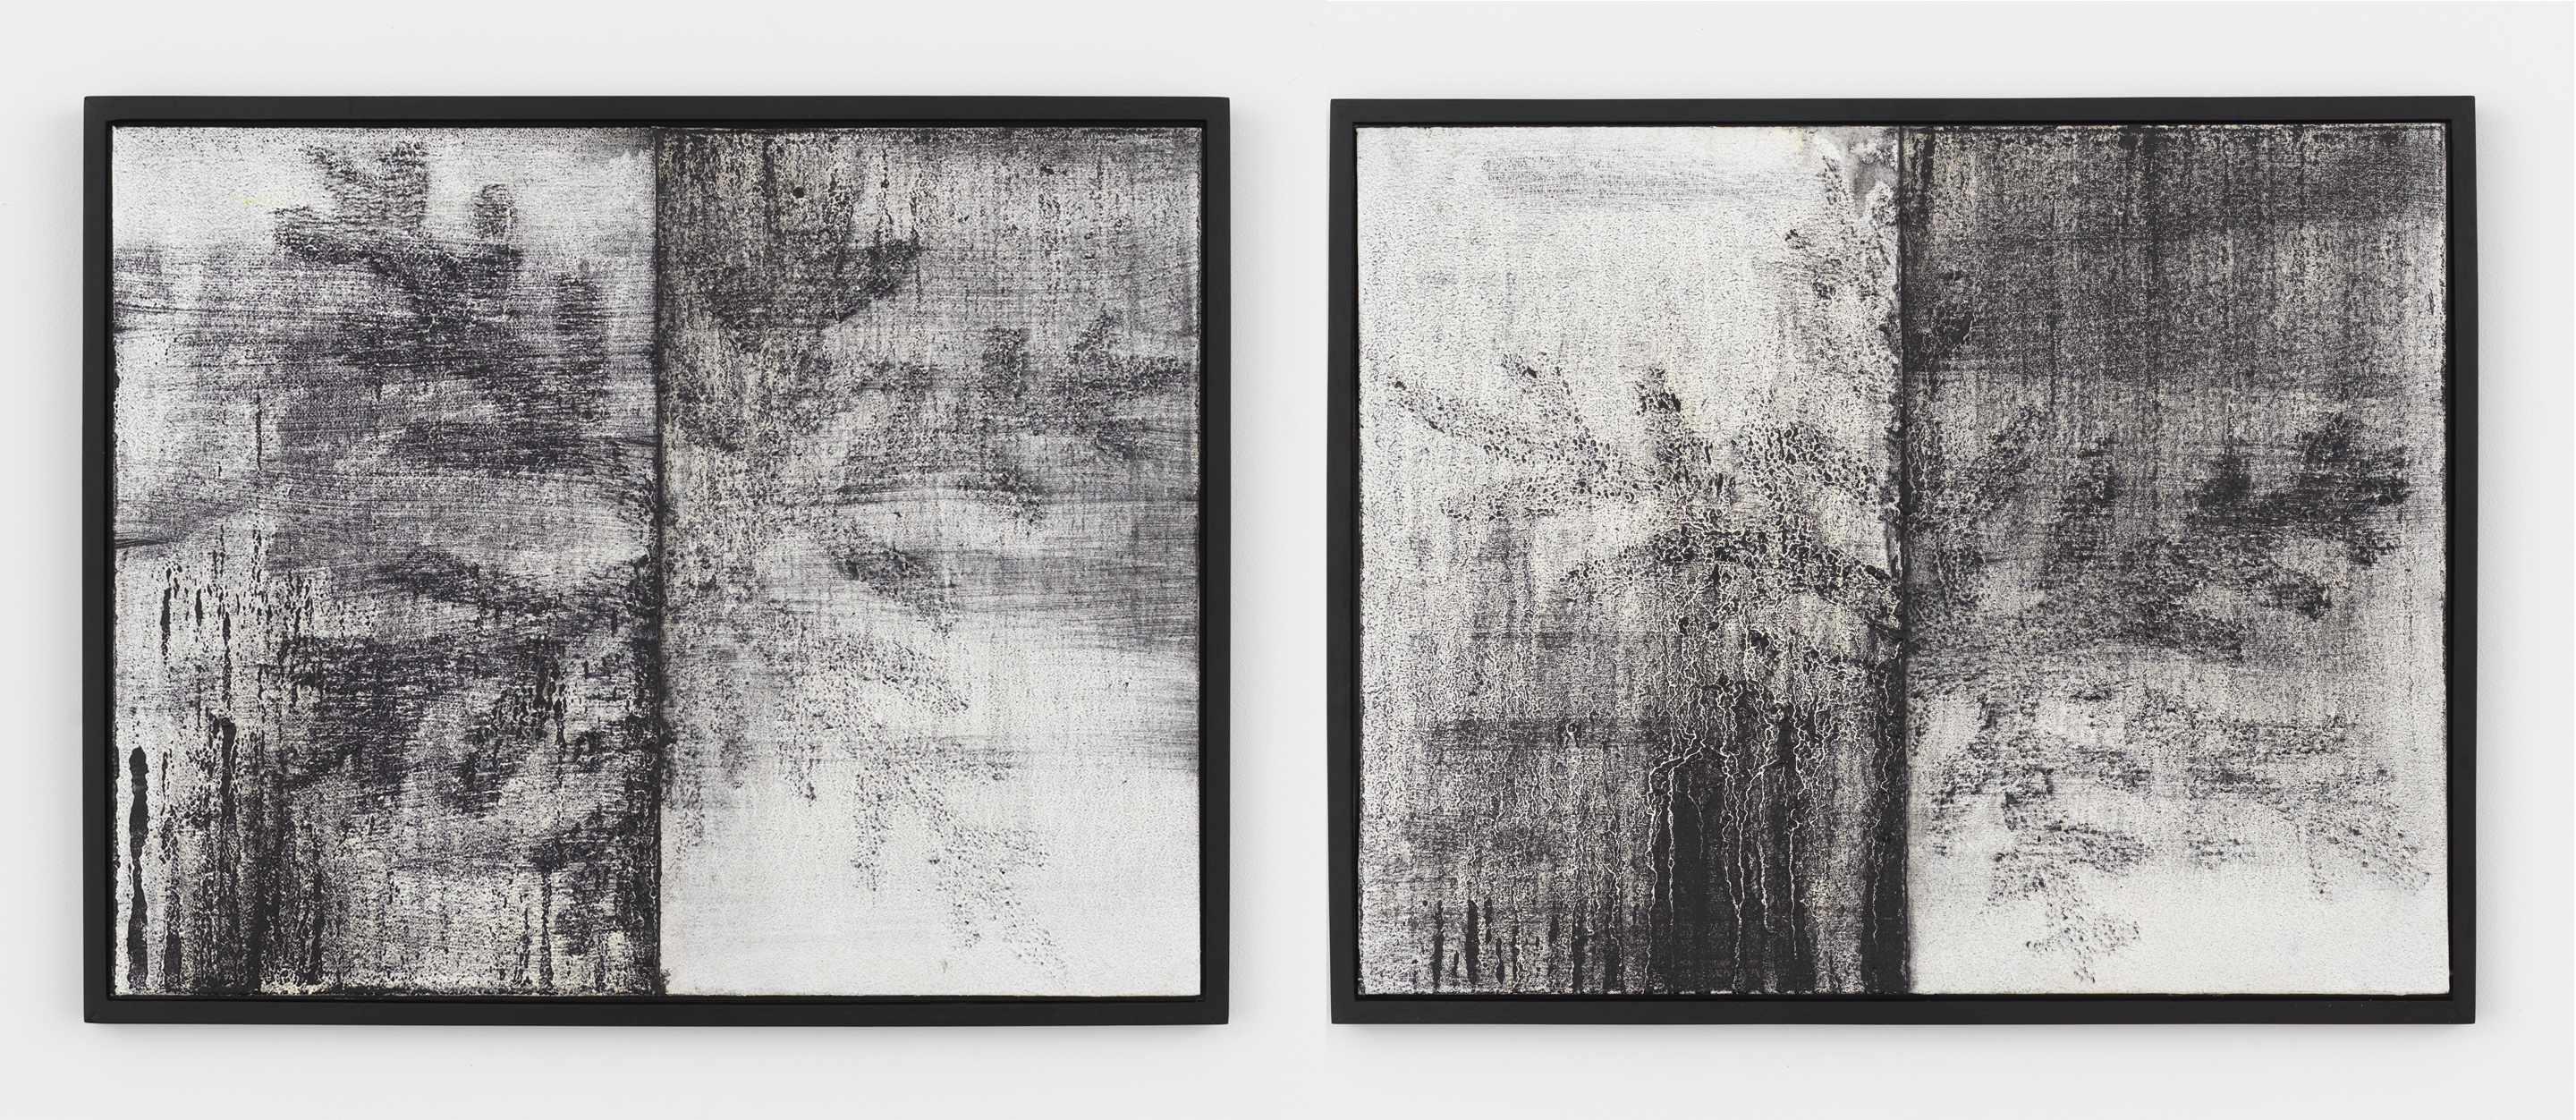 Alex Kwartler, Snowflake (divided) 1, 2018, Oil and pumice on canvas board, 16h x 20w in. (Left) and Snowflake (divided) 2, 2018, Oil and pumice on canvas board, 16h x 20w in.